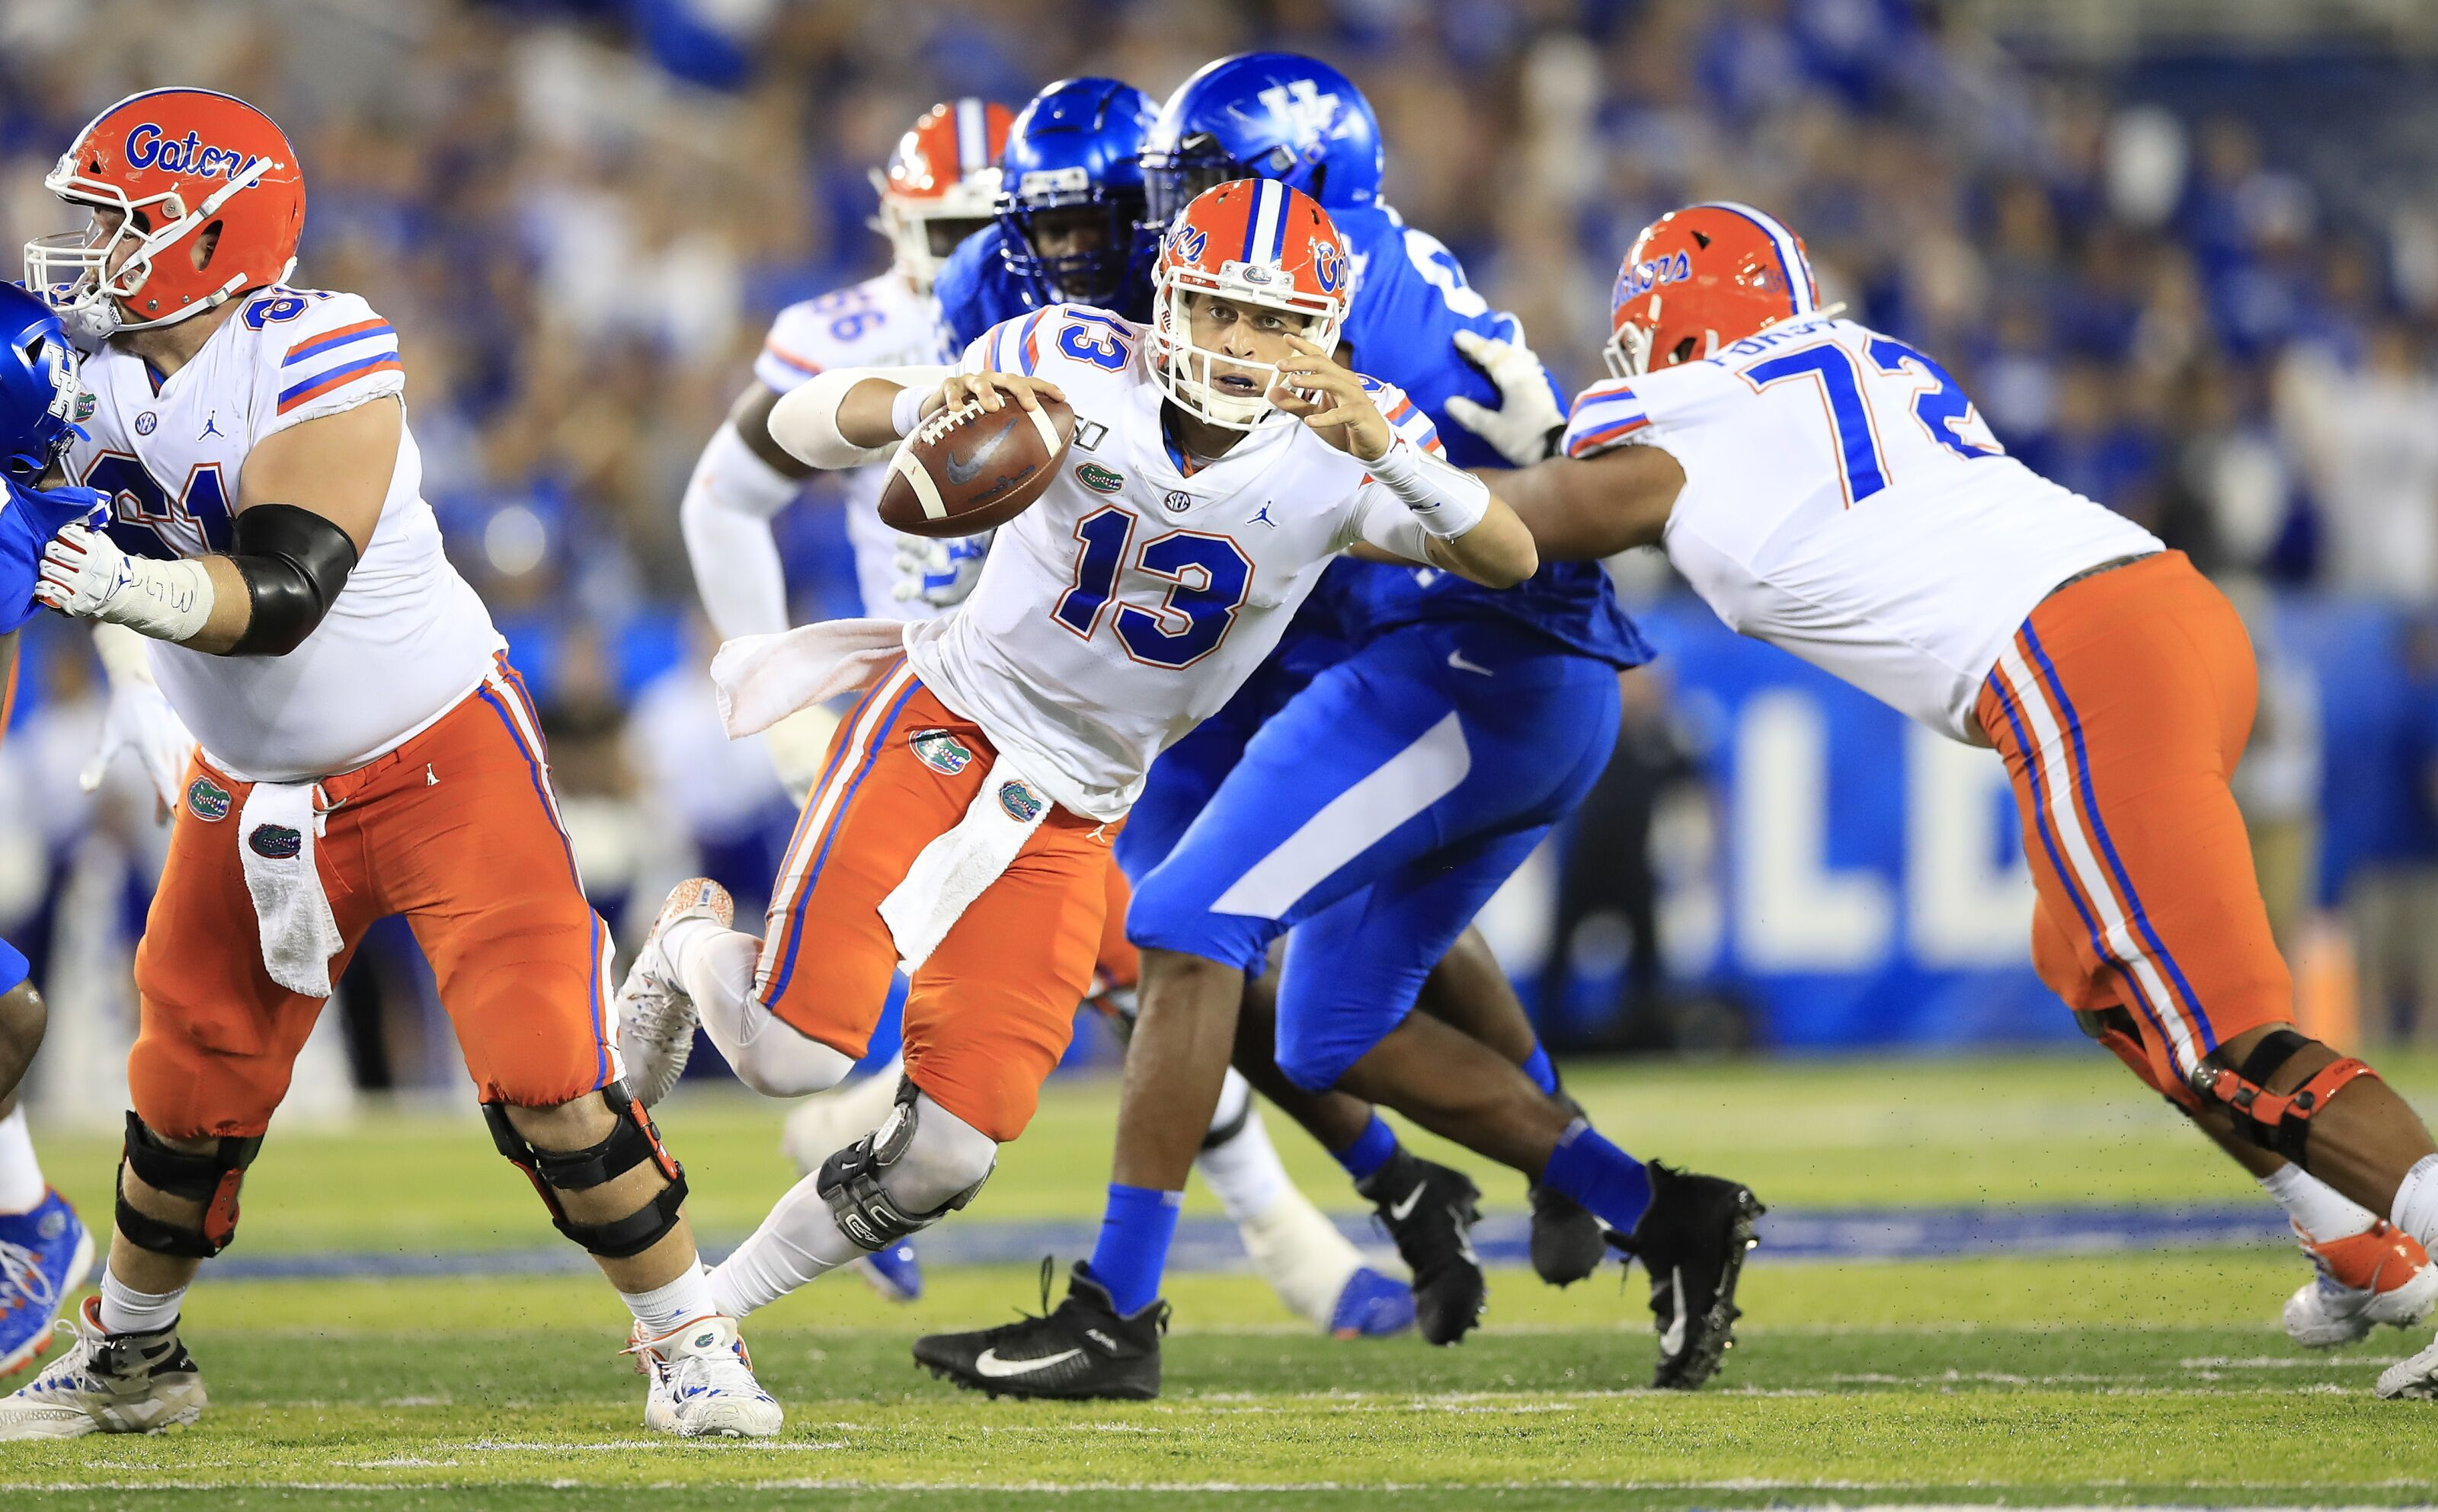 Florida football: Who's in and who's out for the Gators in 2020